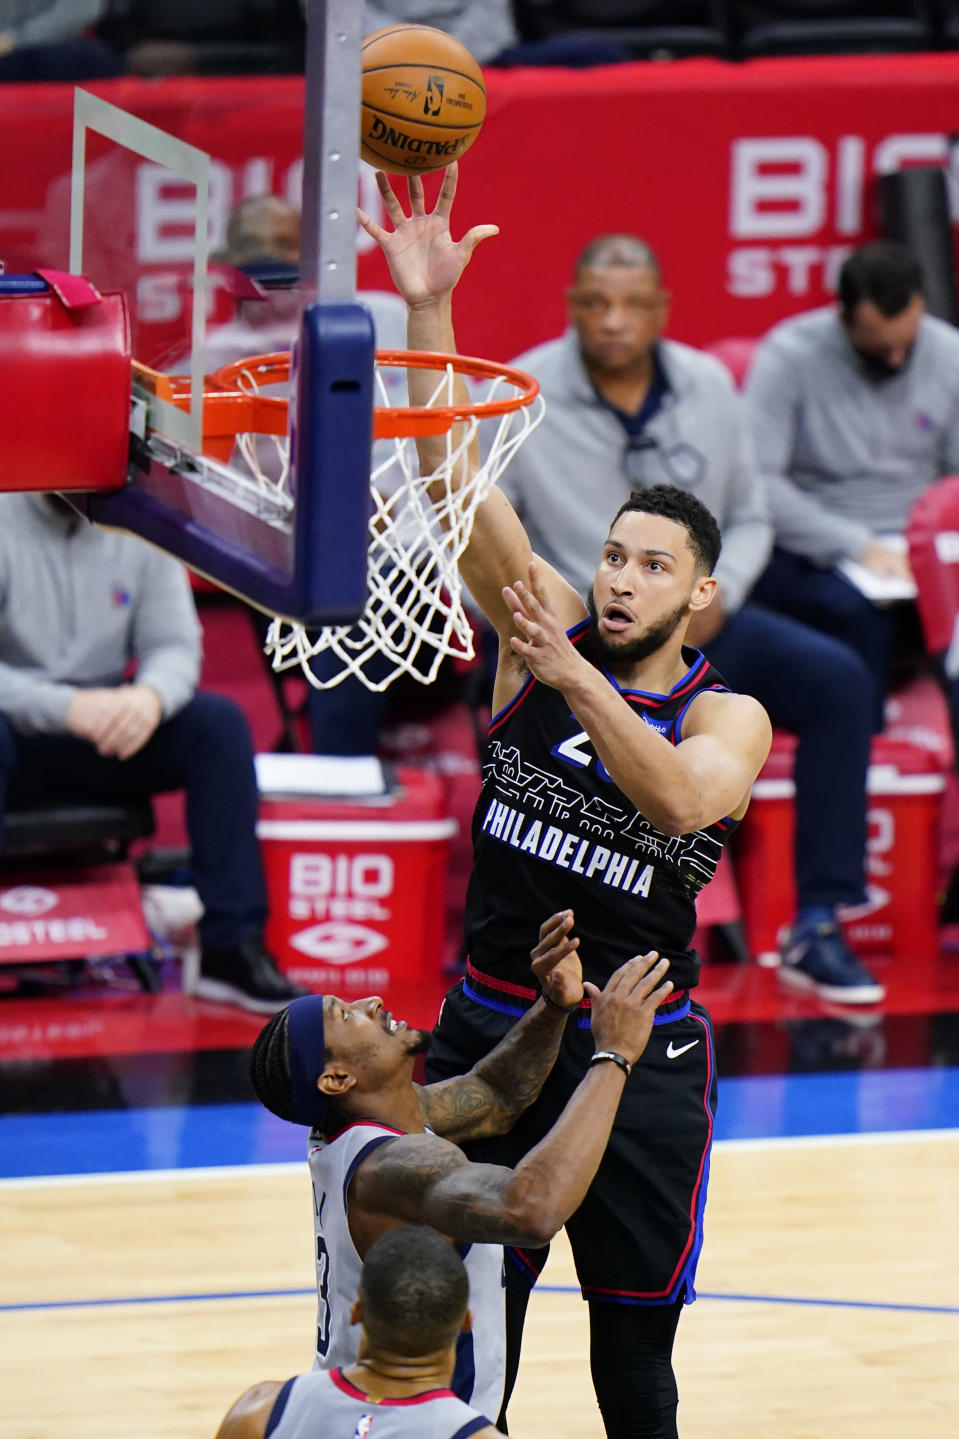 Philadelphia 76ers' Ben Simmons, right, goes up for a shot against Washington Wizards' Bradley Beal during the first half of Game 2 in a first-round NBA basketball playoff series, Wednesday, May 26, 2021, in Philadelphia. Ben Simmons can't shoot and lost his confidence. He blamed a mental block on the worst free-throw shooting percentage in NBA playoff history. The 76ers head into the offseason faced with a big question - do they try and salvage Simmons or deal the former No. 1 pick. (AP Photo/Matt Slocum)